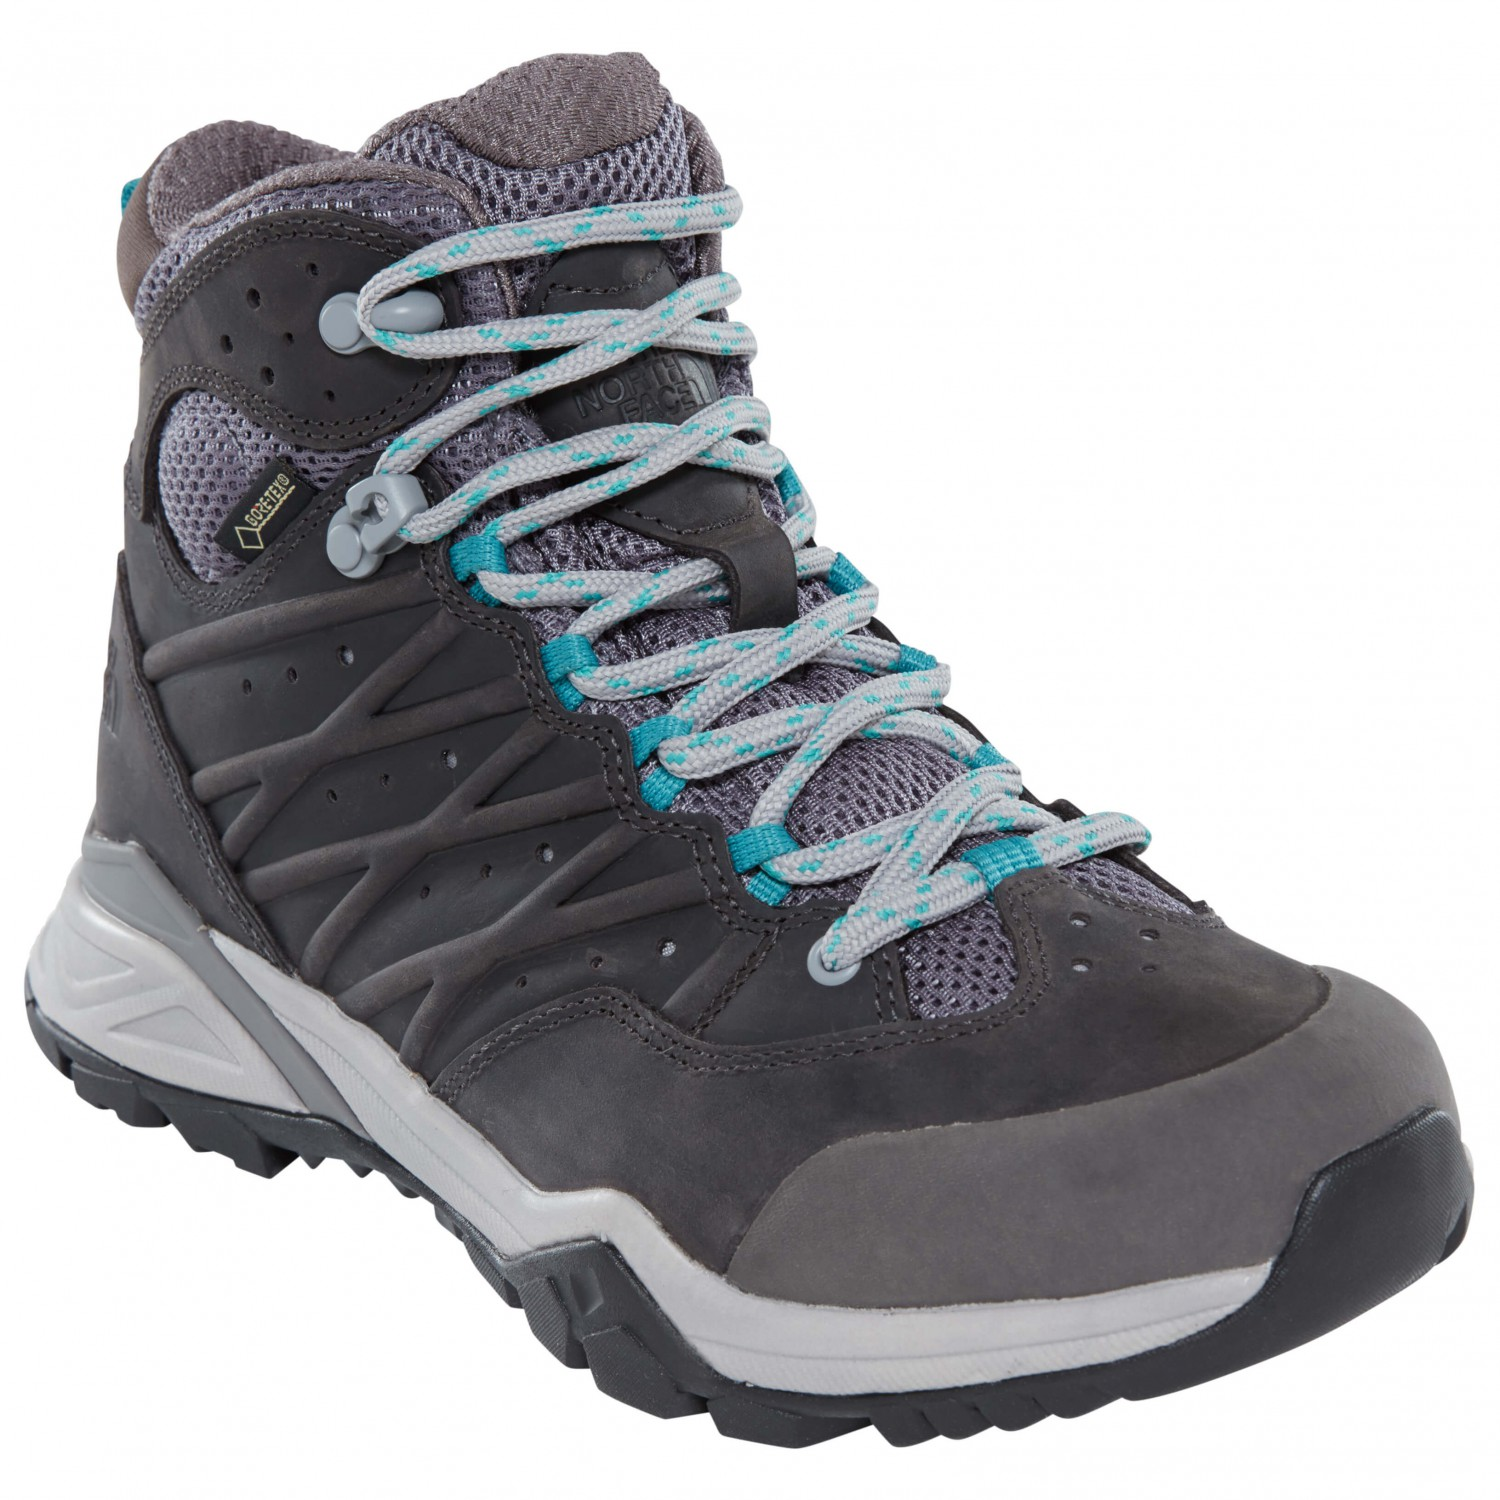 d778963c8 The North Face - Women's Hedgehog Hike II Mid GTX - Walking boots - Q /  Silver Grey / Porcelain Green | 6,5 (US)